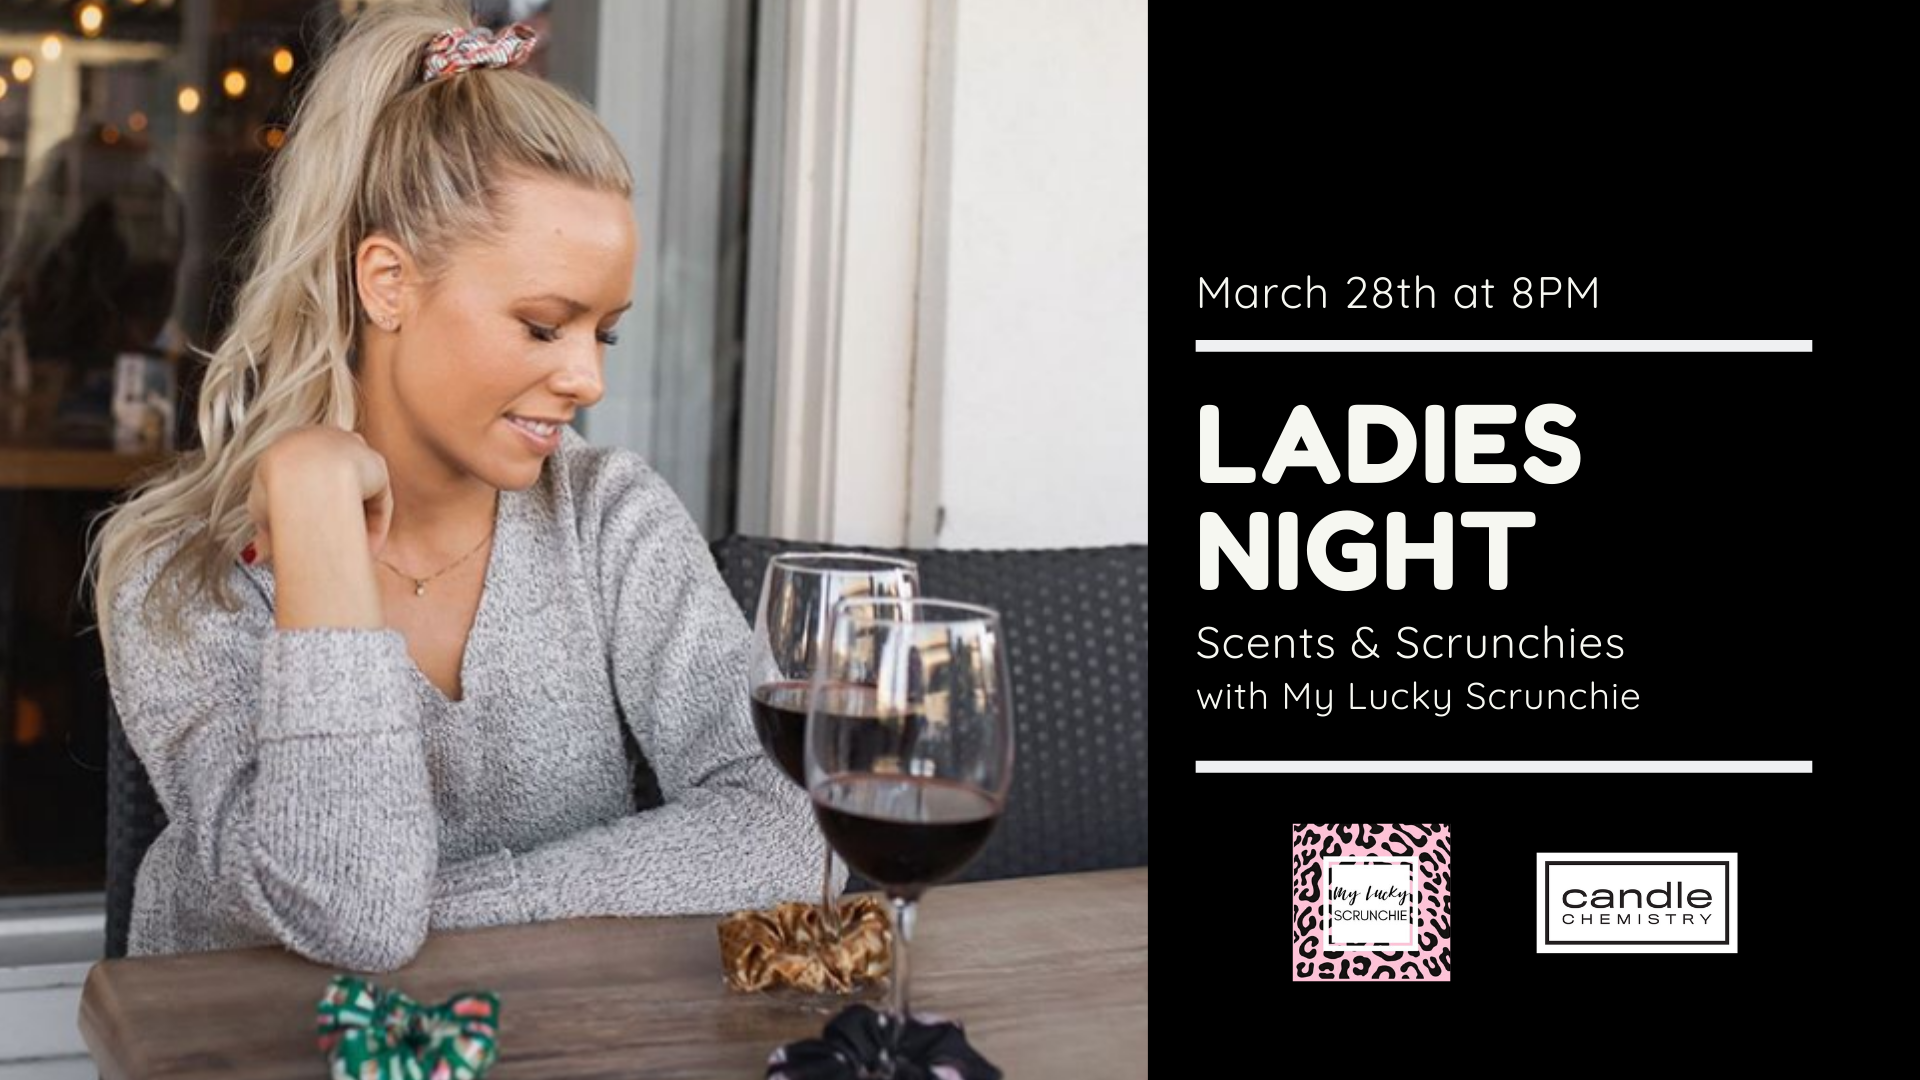 Ladies Night- Scents & Scrunchies- March 28th